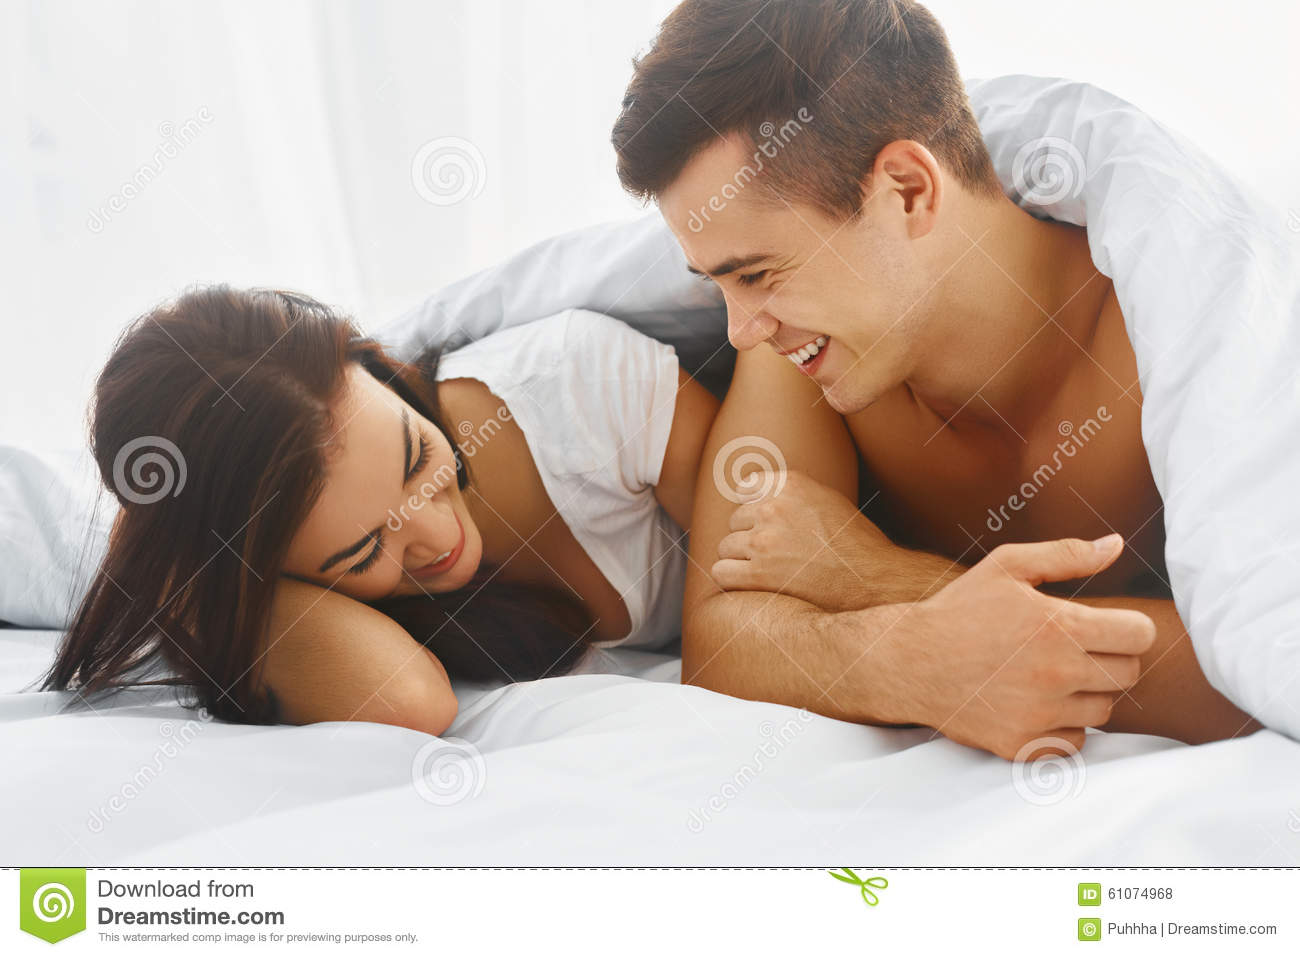 man and woman relationship in bed